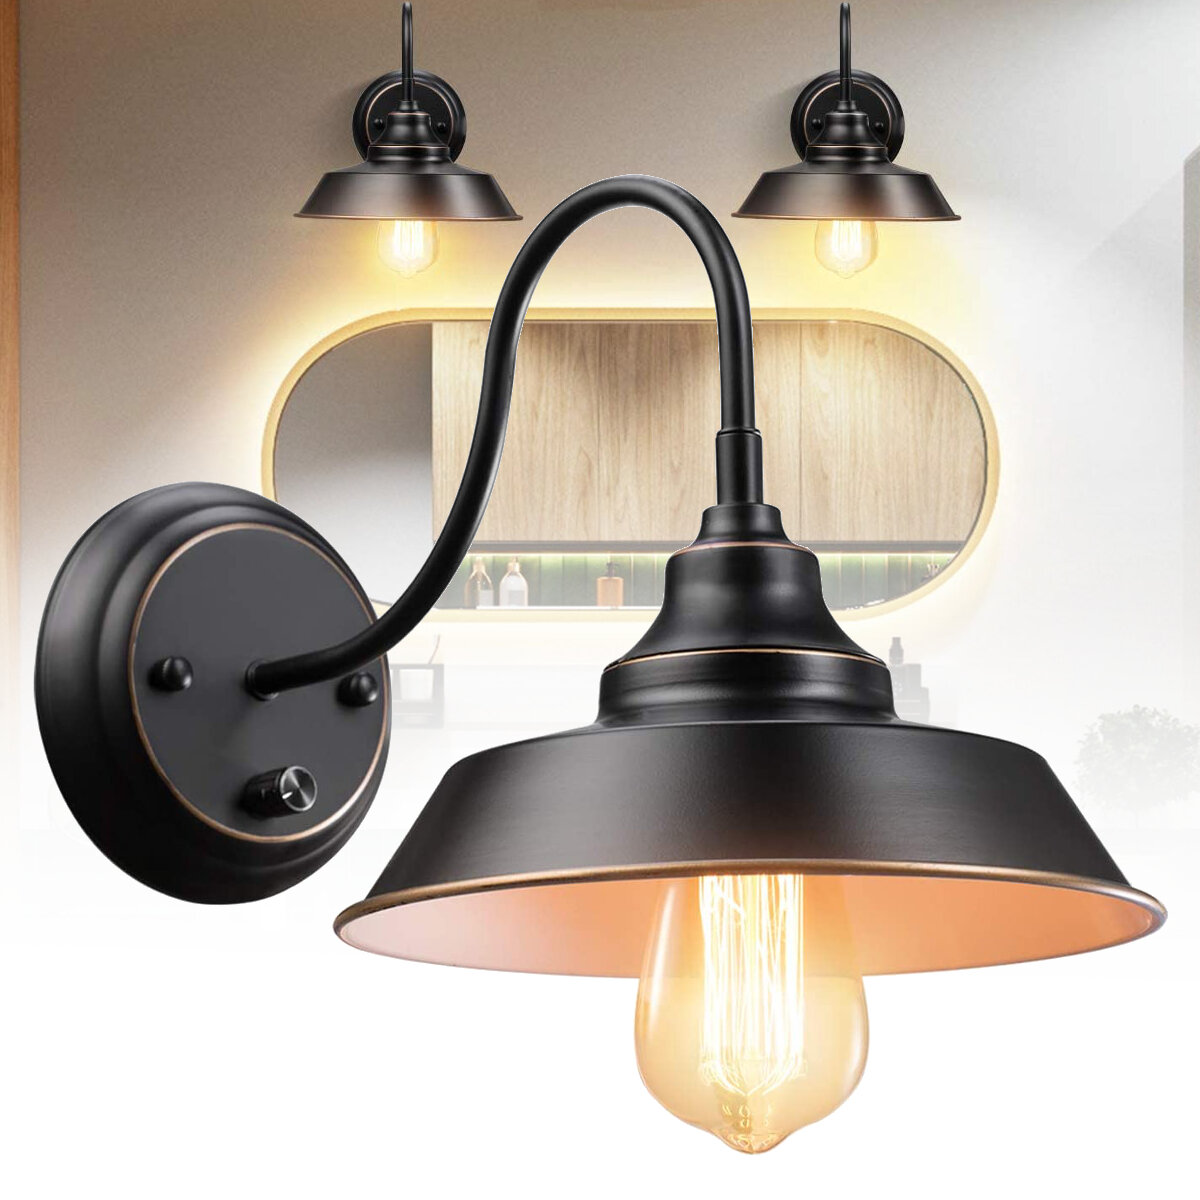 E27 Vintage Wall Lamp American Style Indoor Light For Home Hallway Corridor Ac220v Sale Banggood Com Arrival Notice